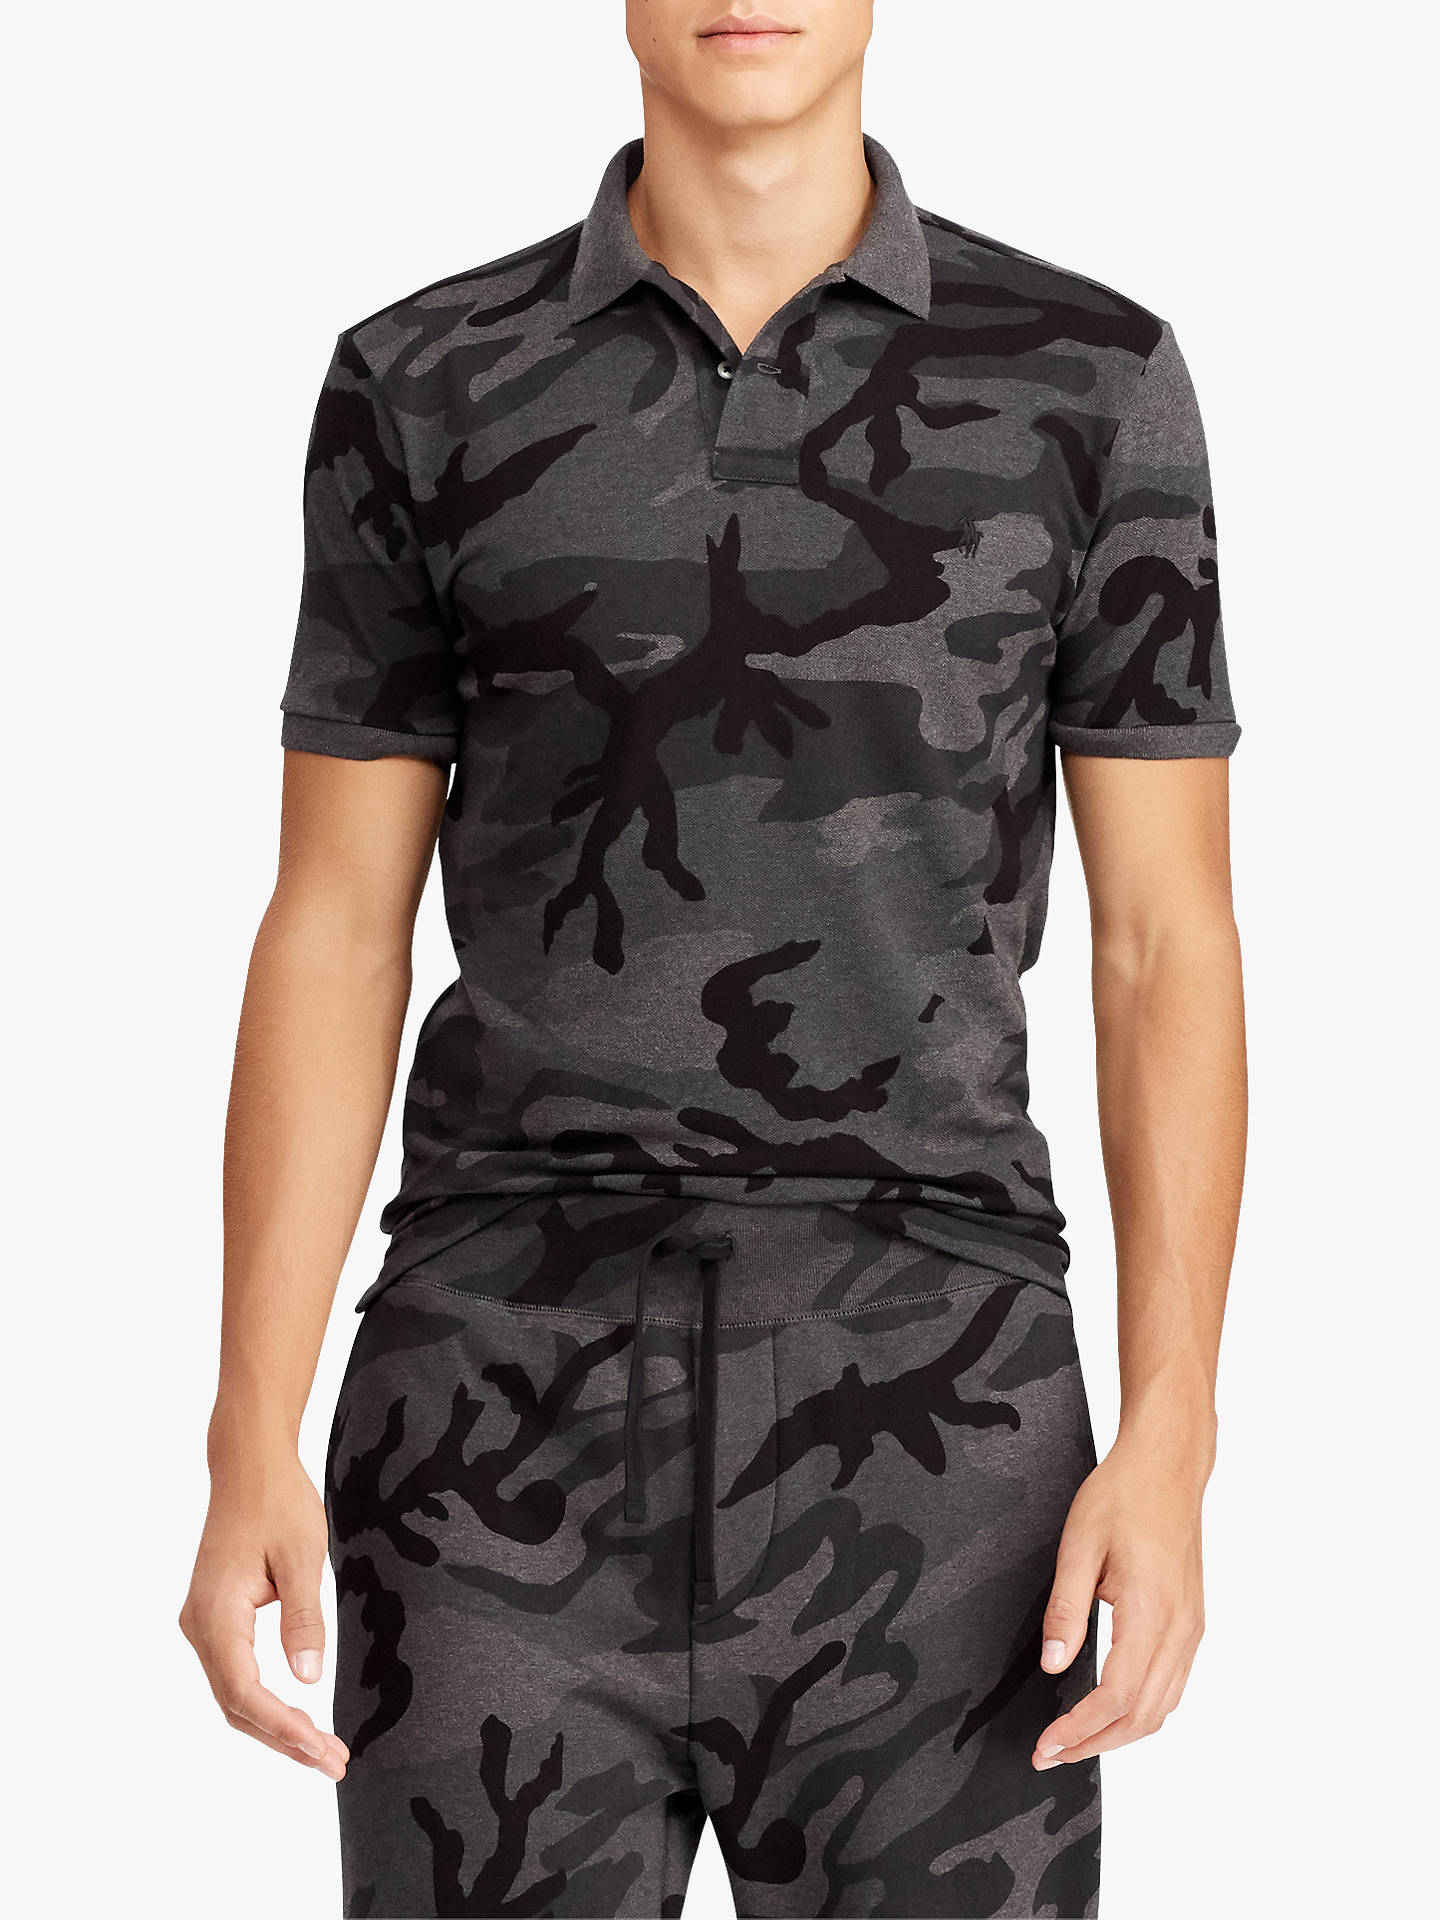 e500acfdb6b47 Buy Polo Ralph Lauren Custom Fit Camo Mesh Polo Shirt